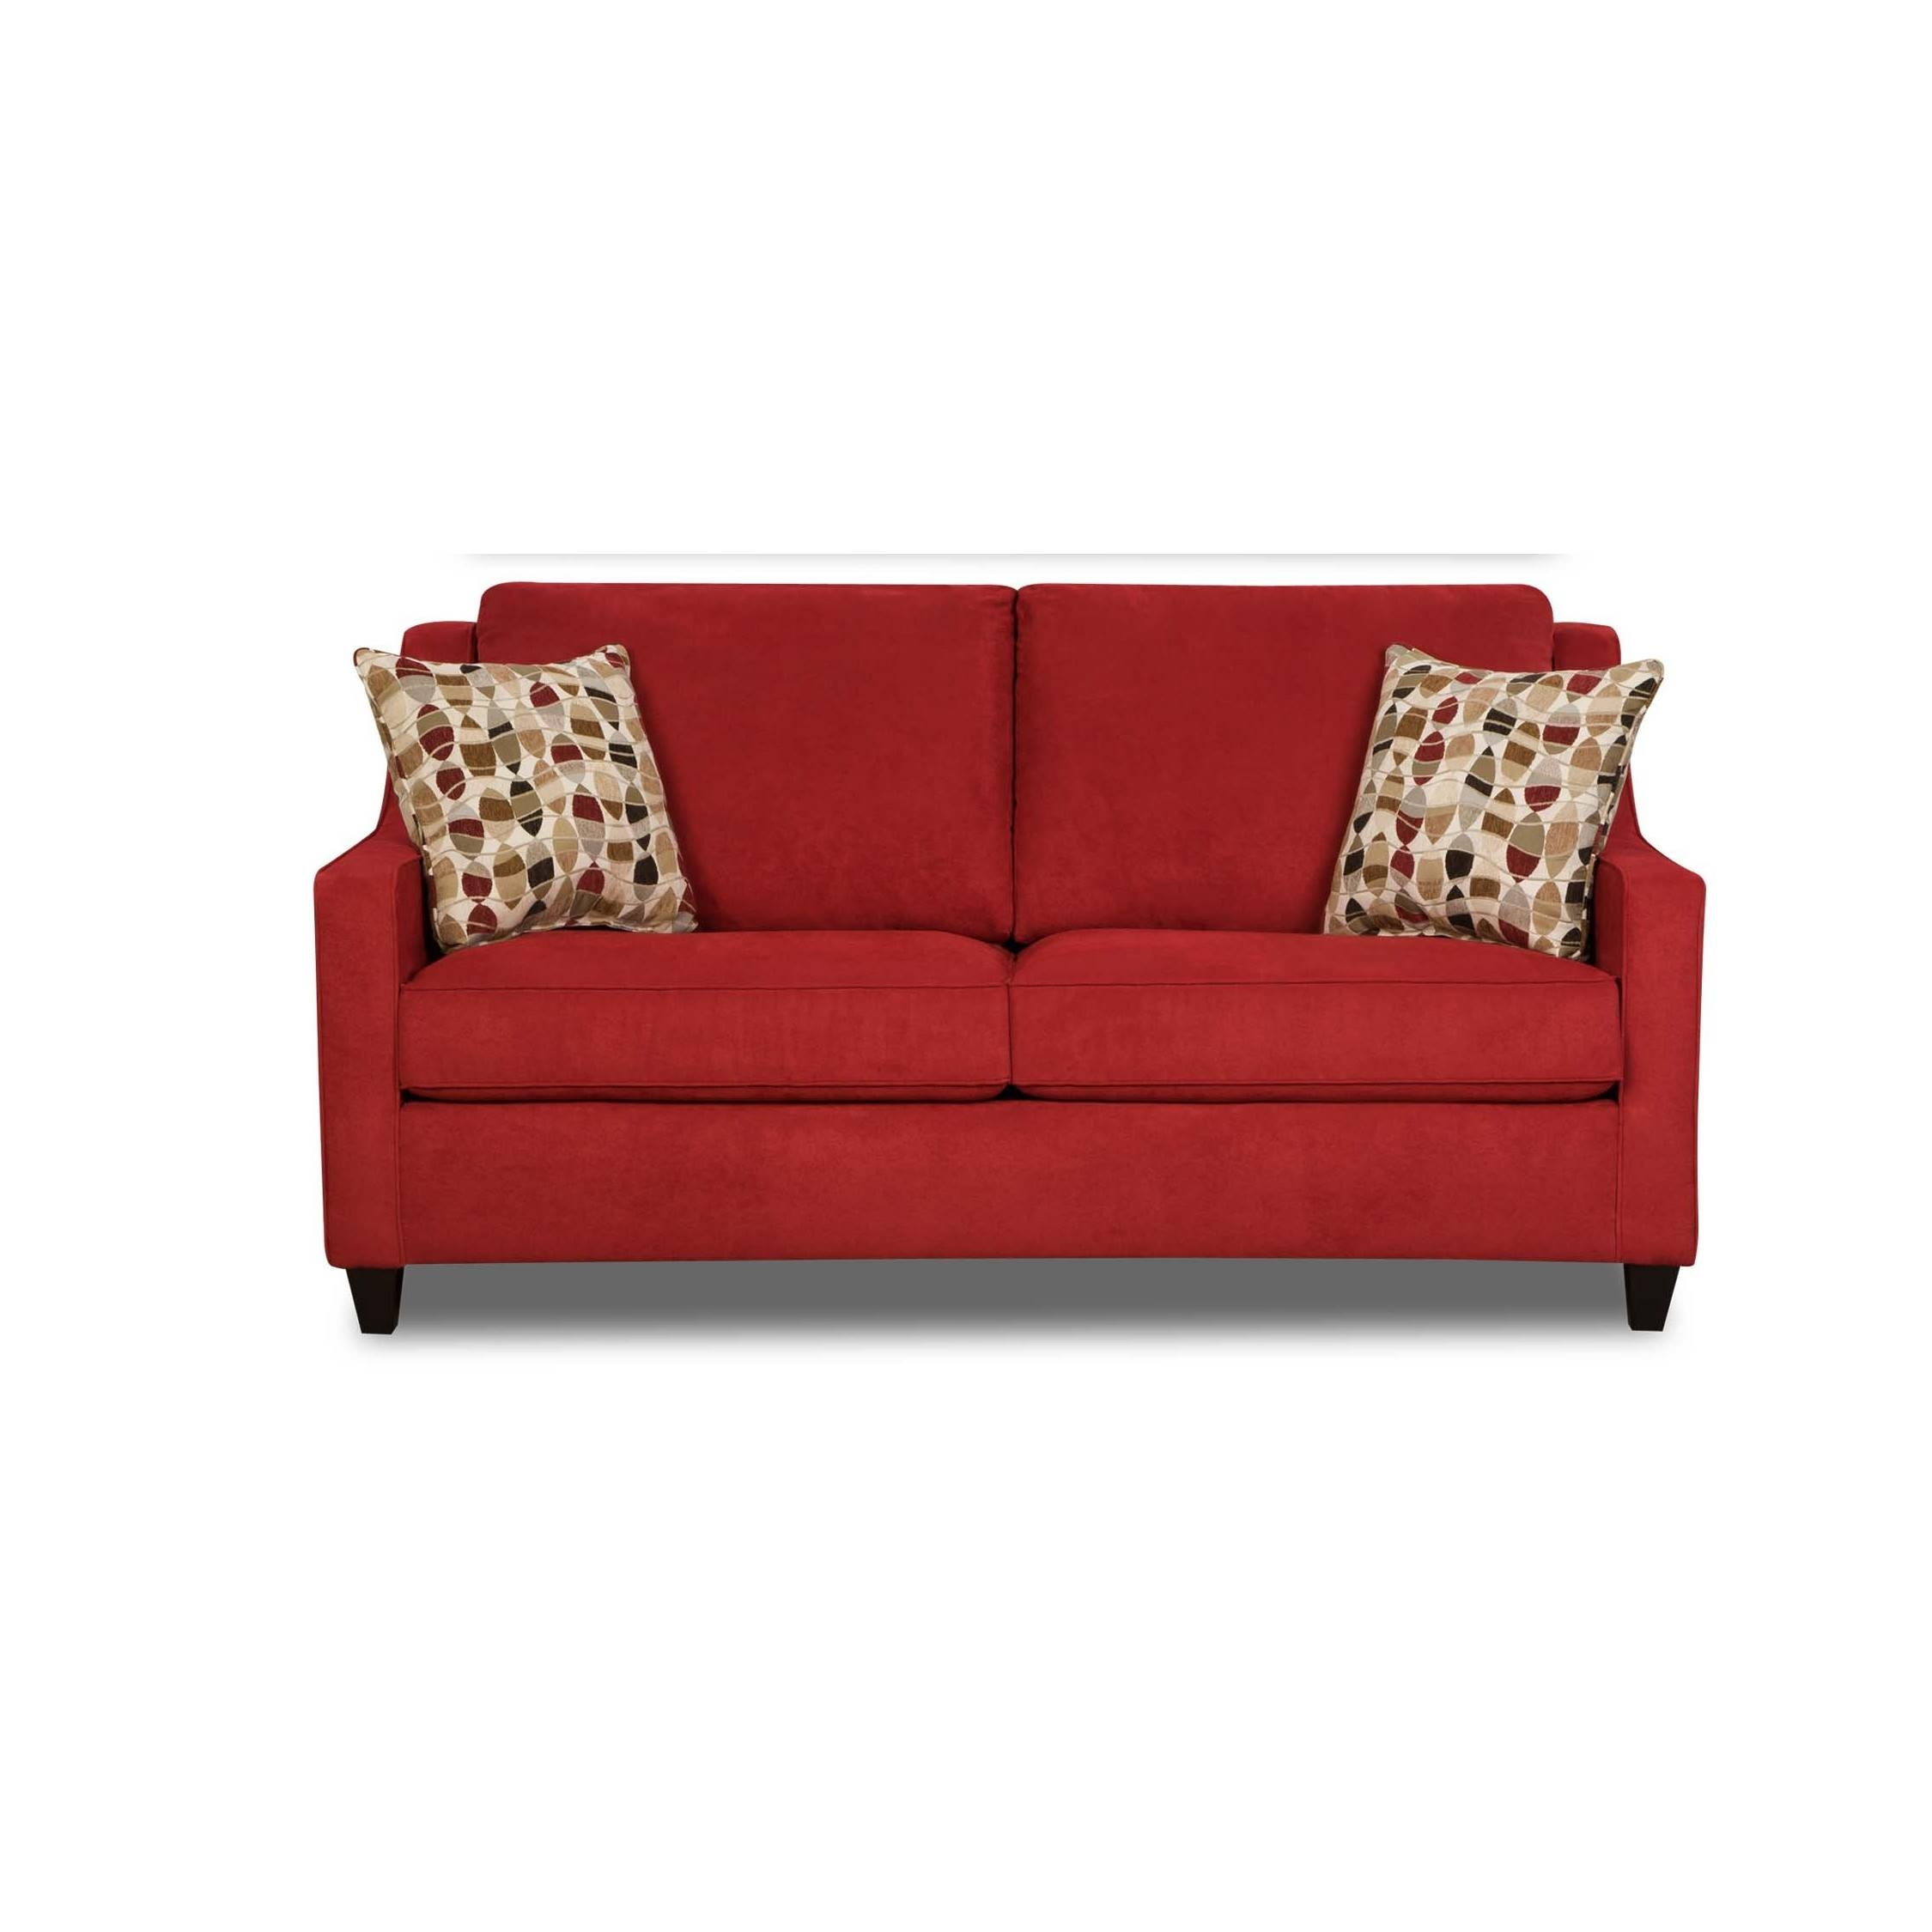 Furniture: Using Comfy Simmons Sleeper Sofa For Home Furniture within Red Sleeper Sofa (Image 10 of 30)